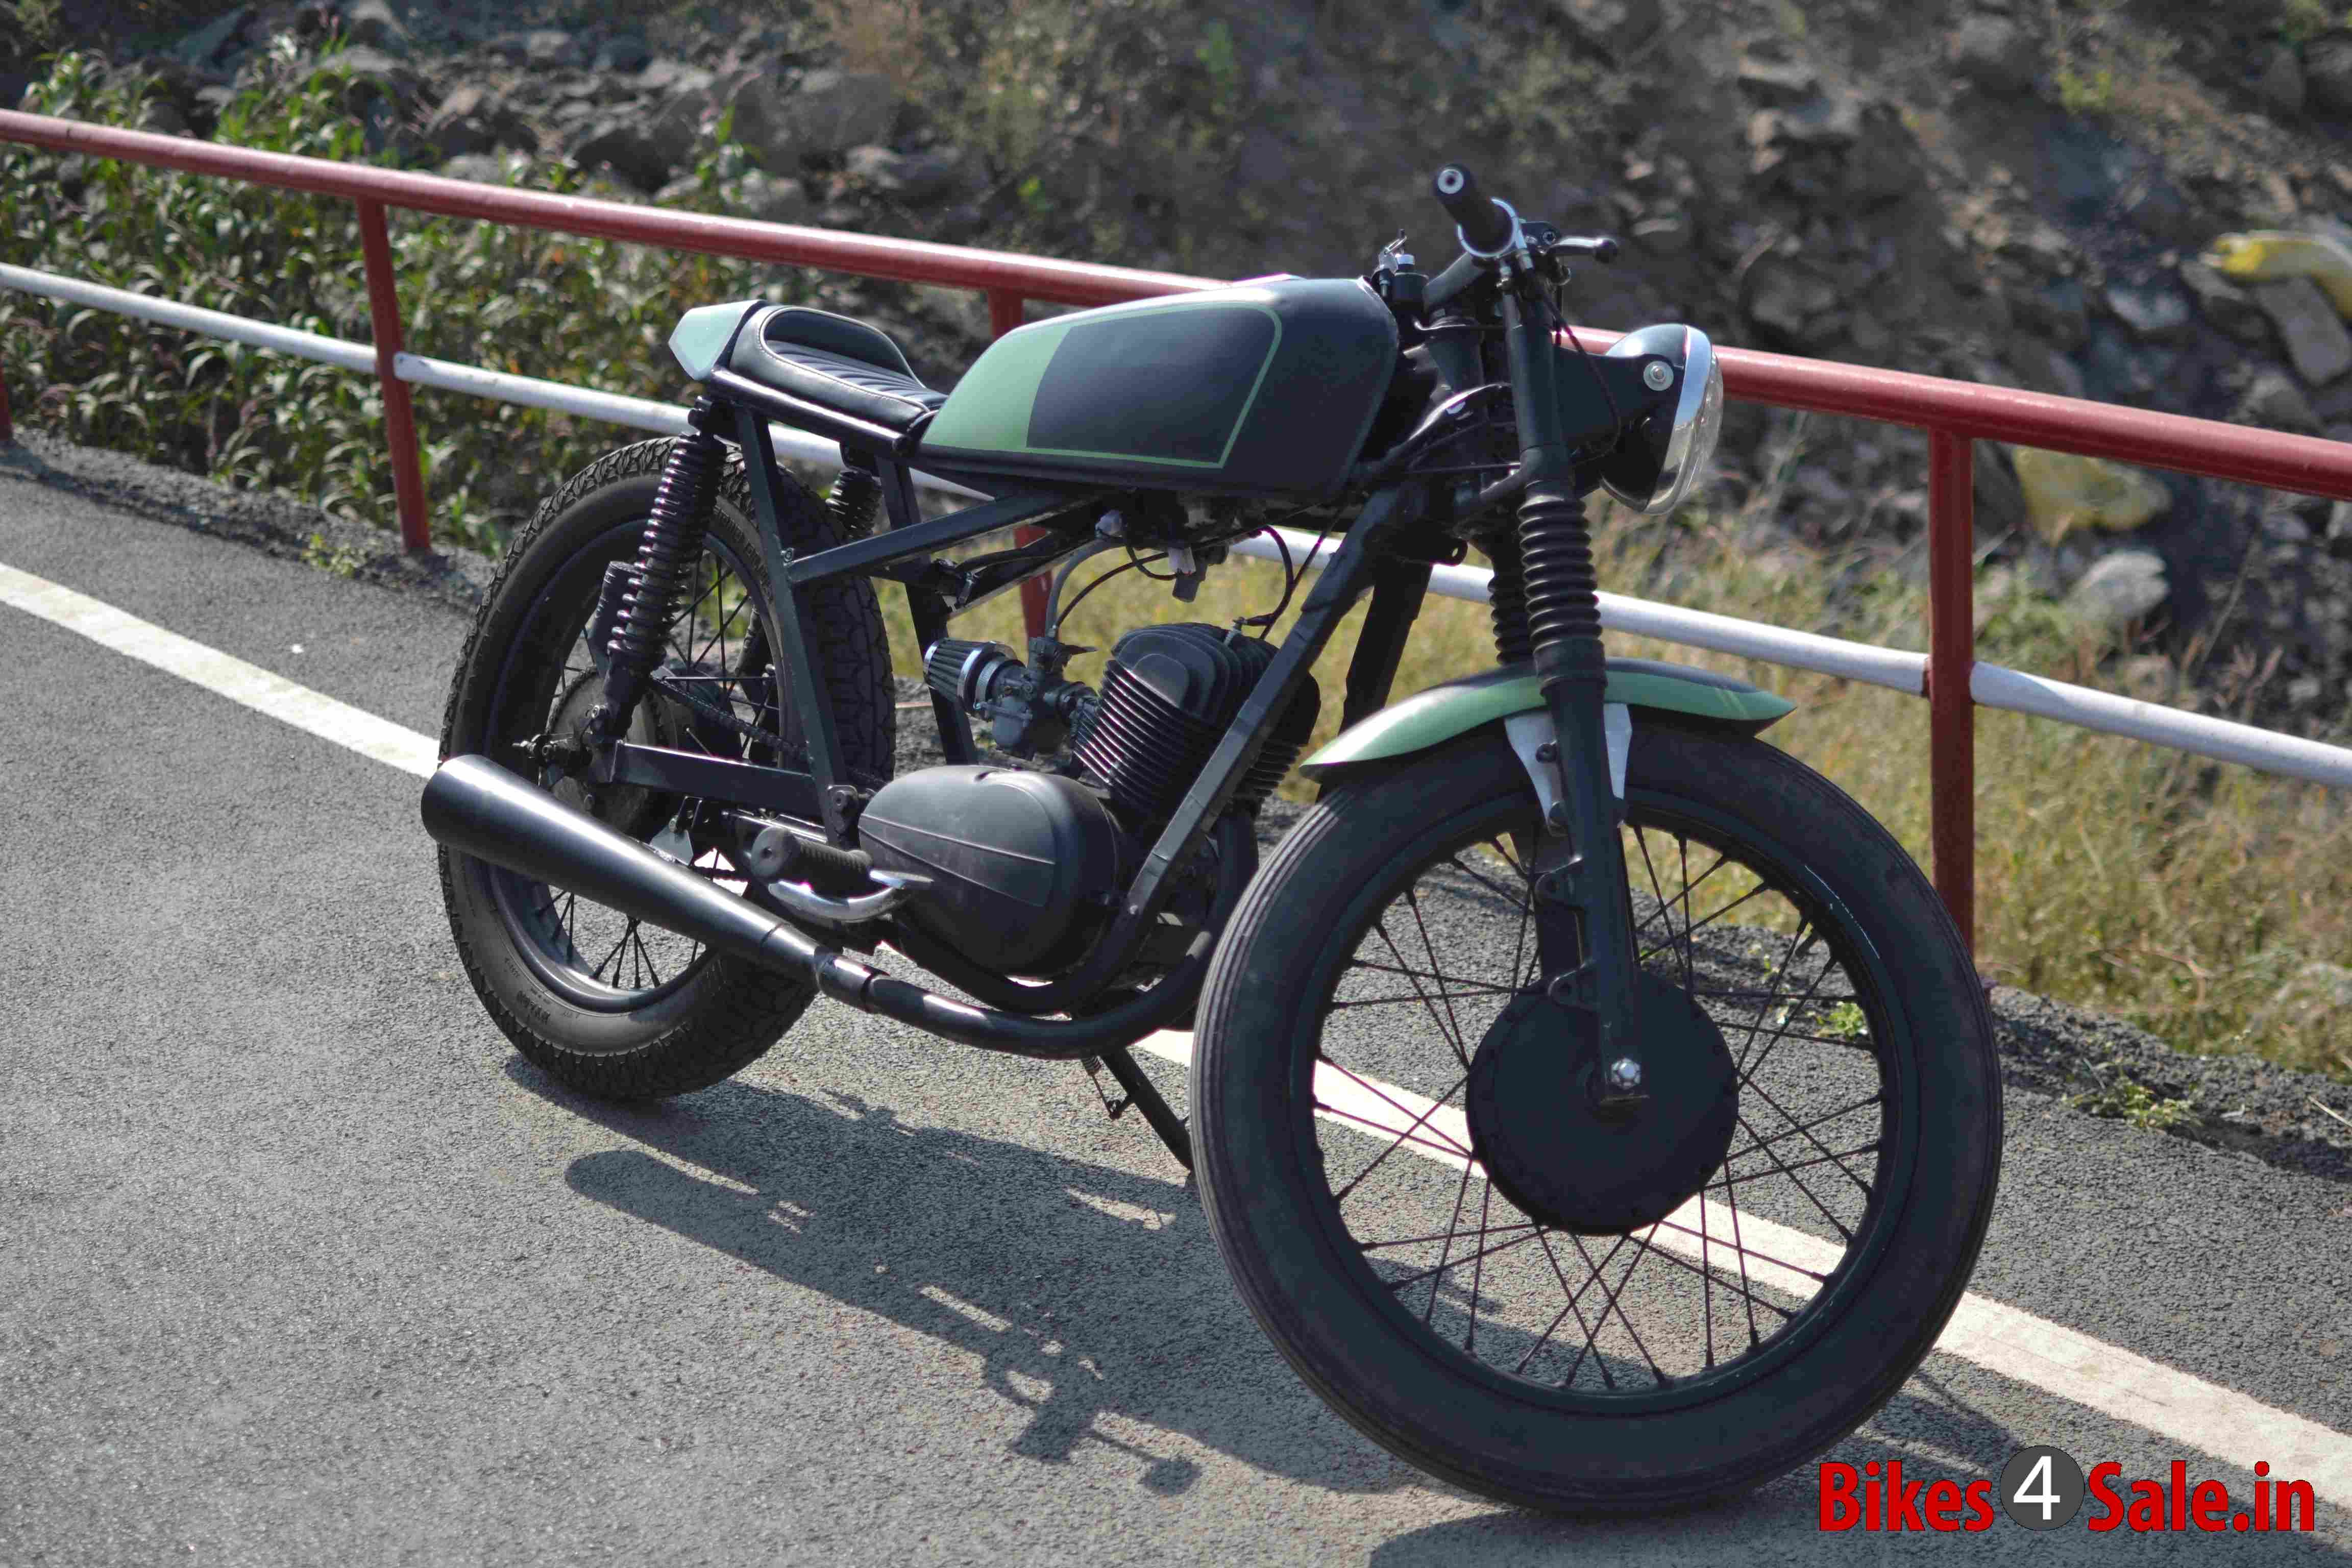 Custom Modified Rajdoot 175 Cc Motorcycle Bike Cafe Racer Old